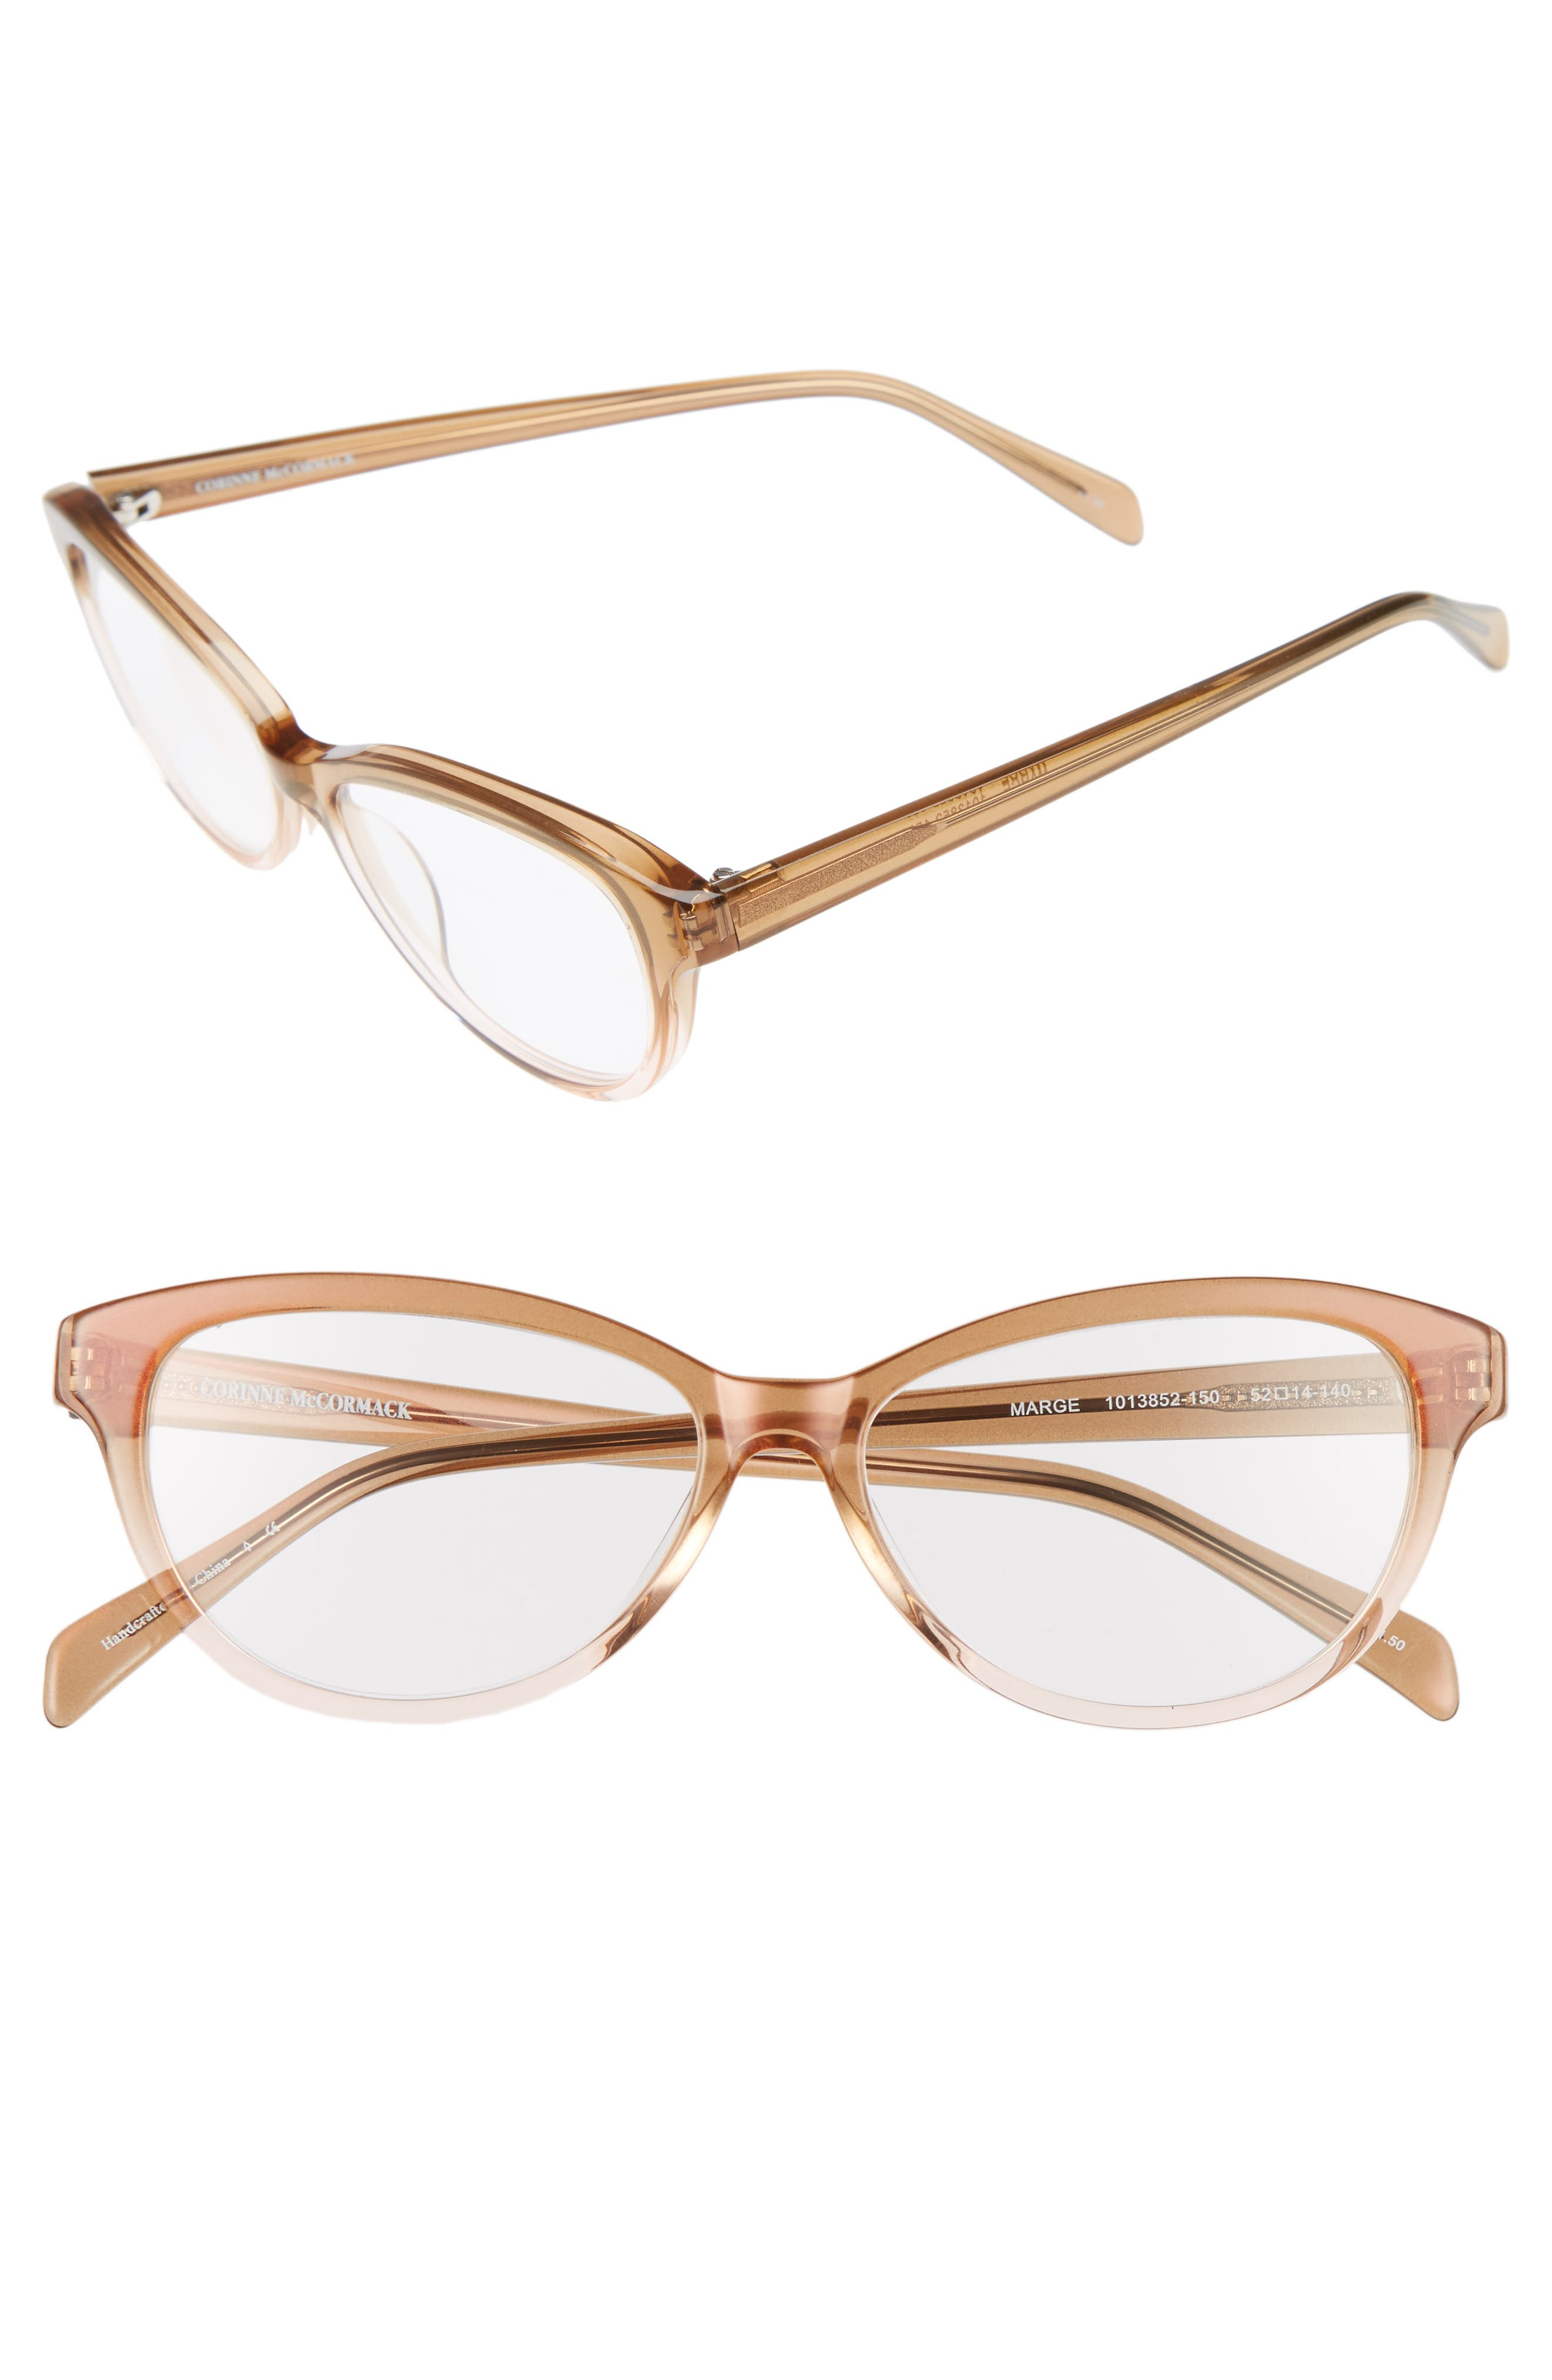 Corinne McCormack 'Marge' 52mm Reading Glasses (2 for $88)